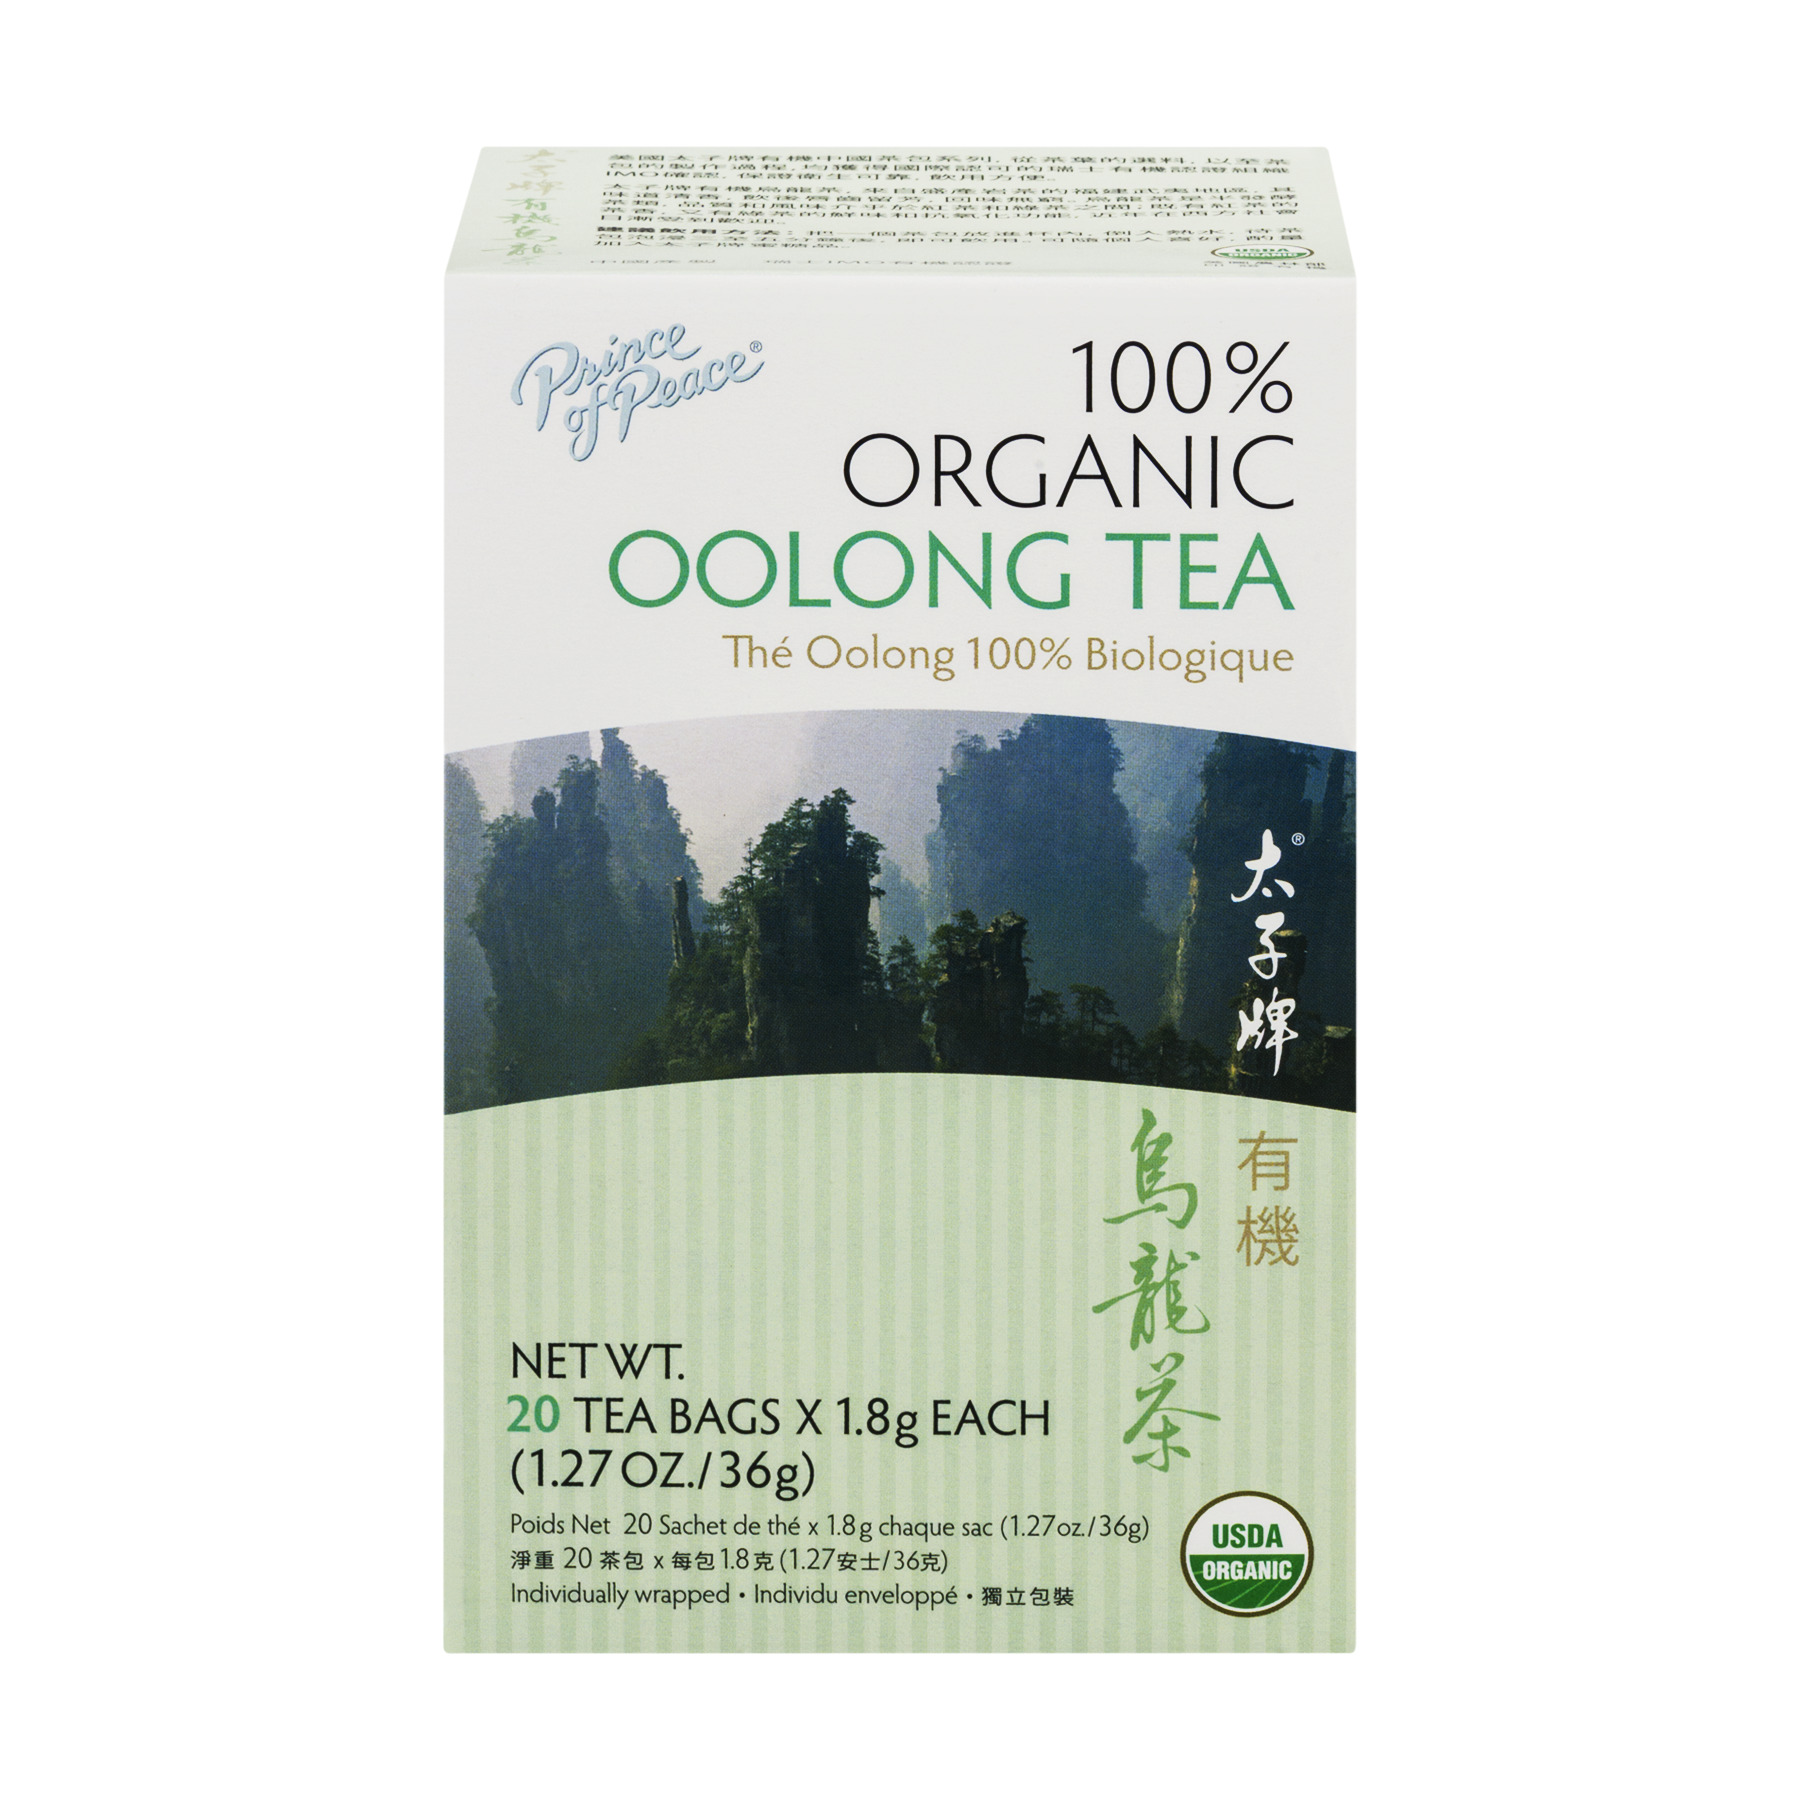 Prince of Peace Organic Oolong Tea Bags - 20 CT1.27 OZ